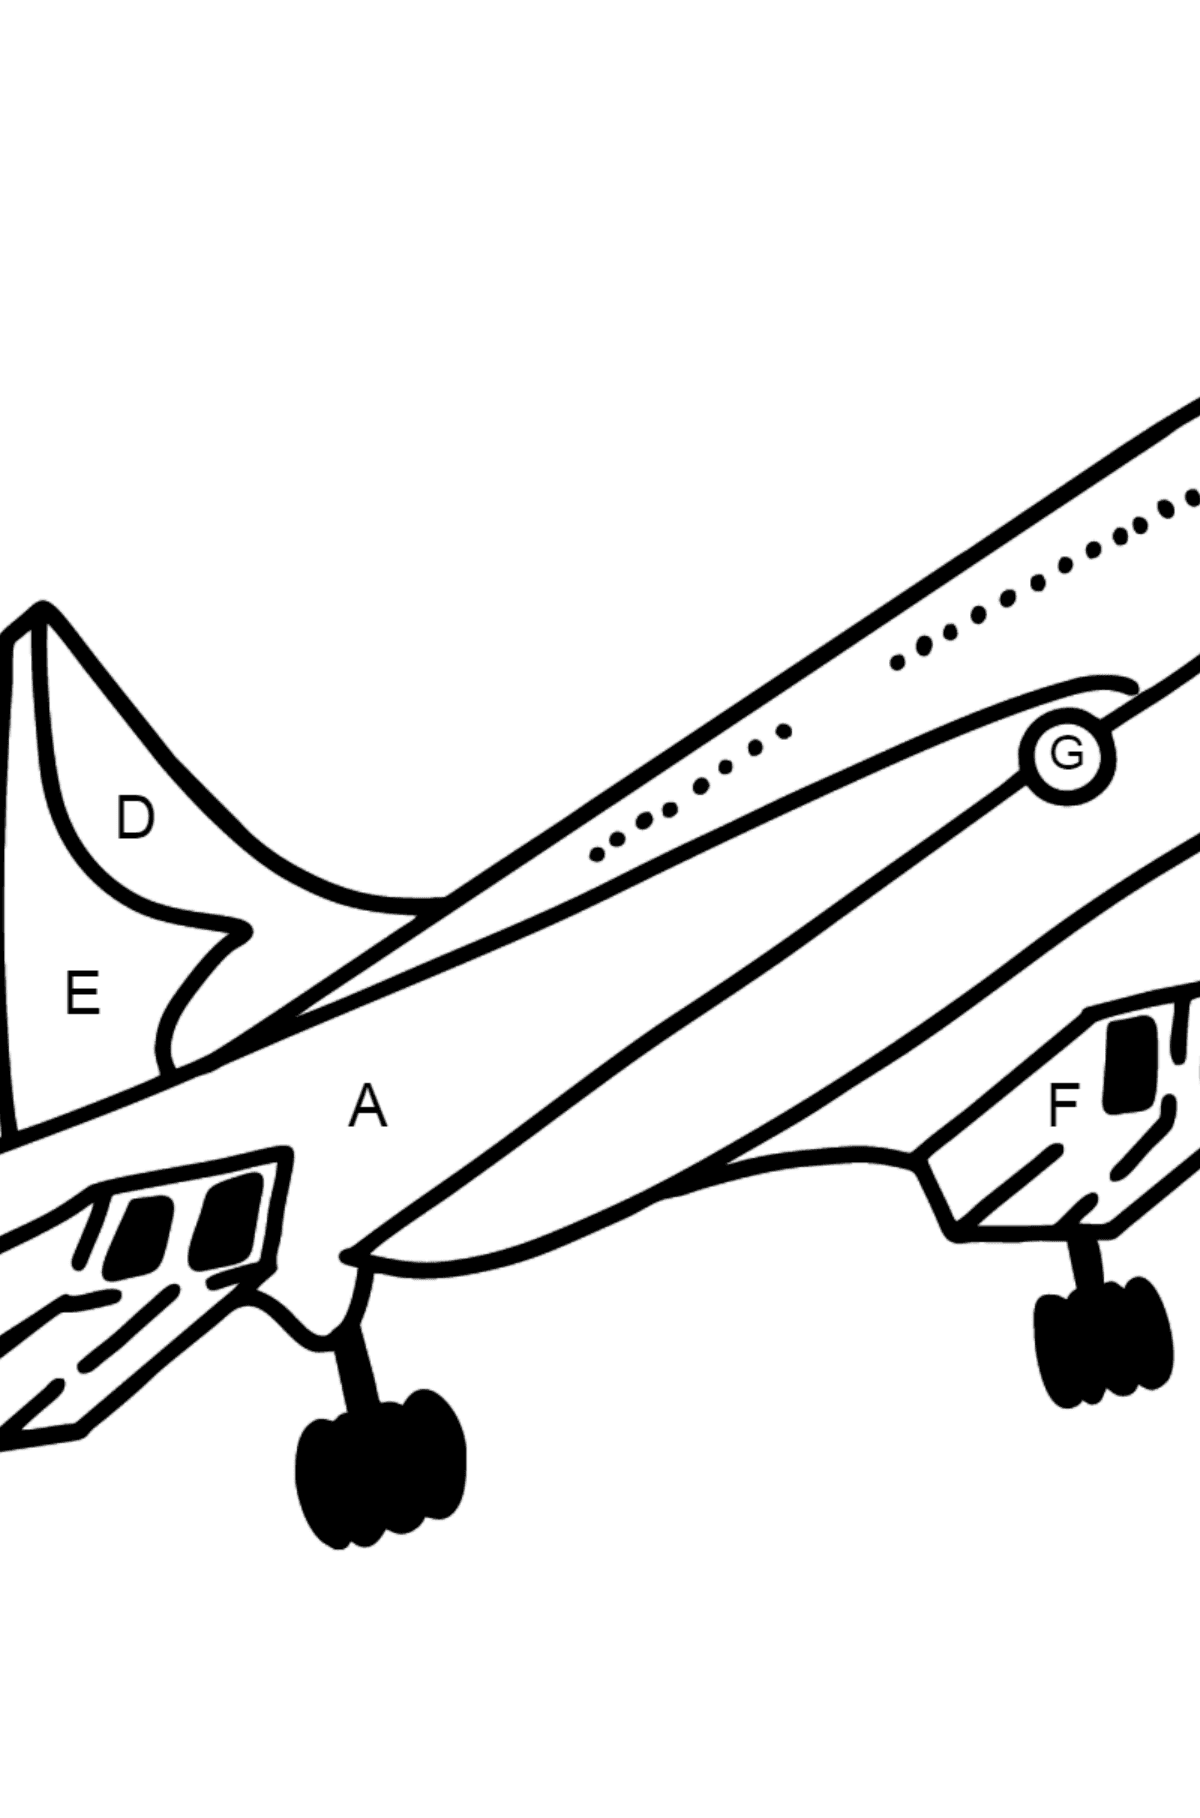 Concorde coloring page - Coloring by Letters for Kids